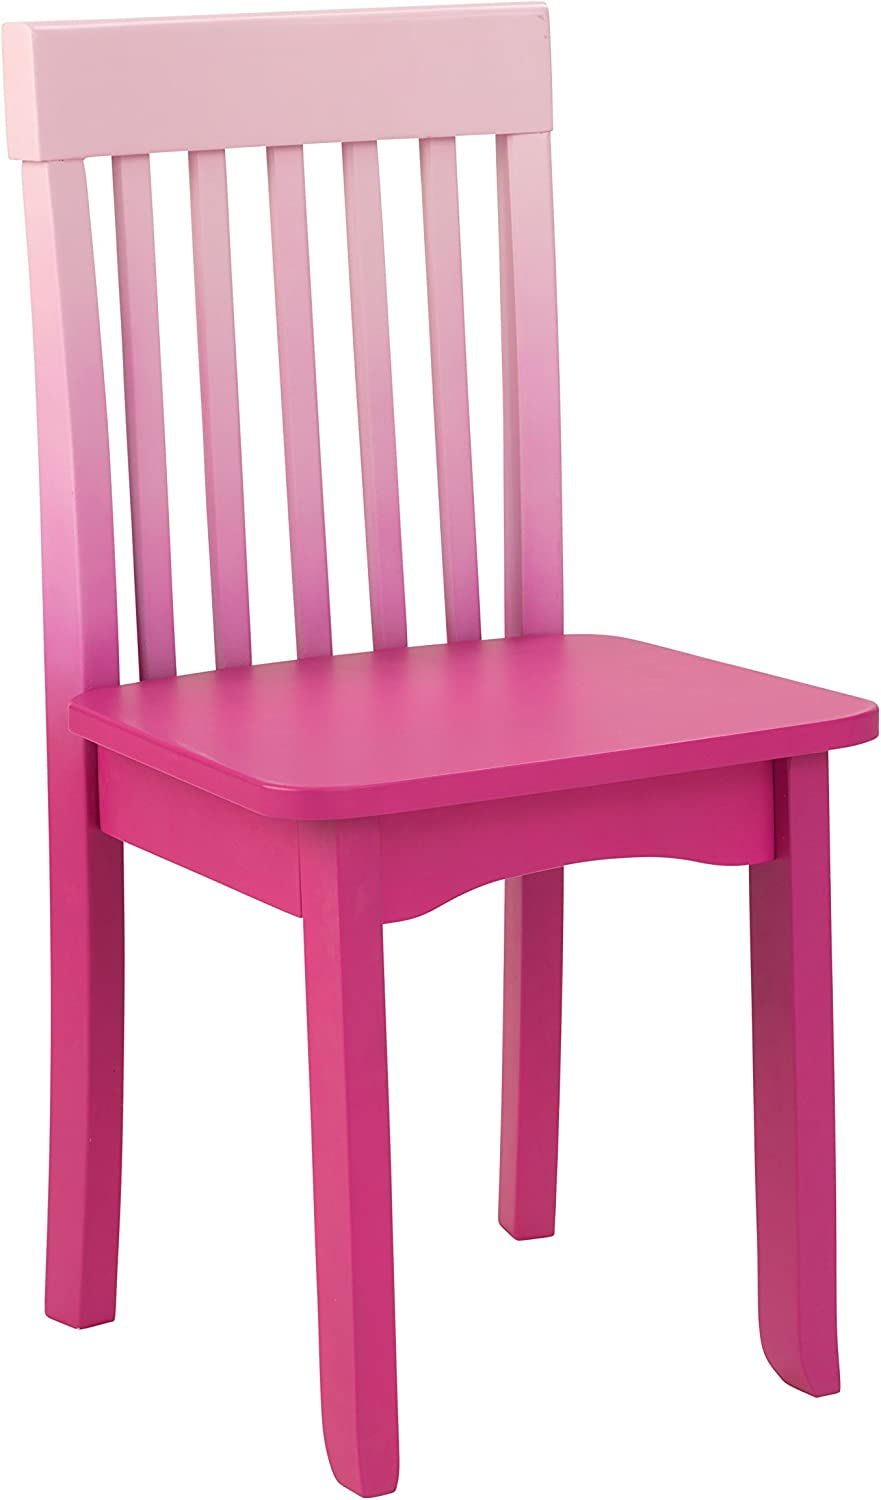 KidKraft Avalon Chair, Hot Pink Ombre